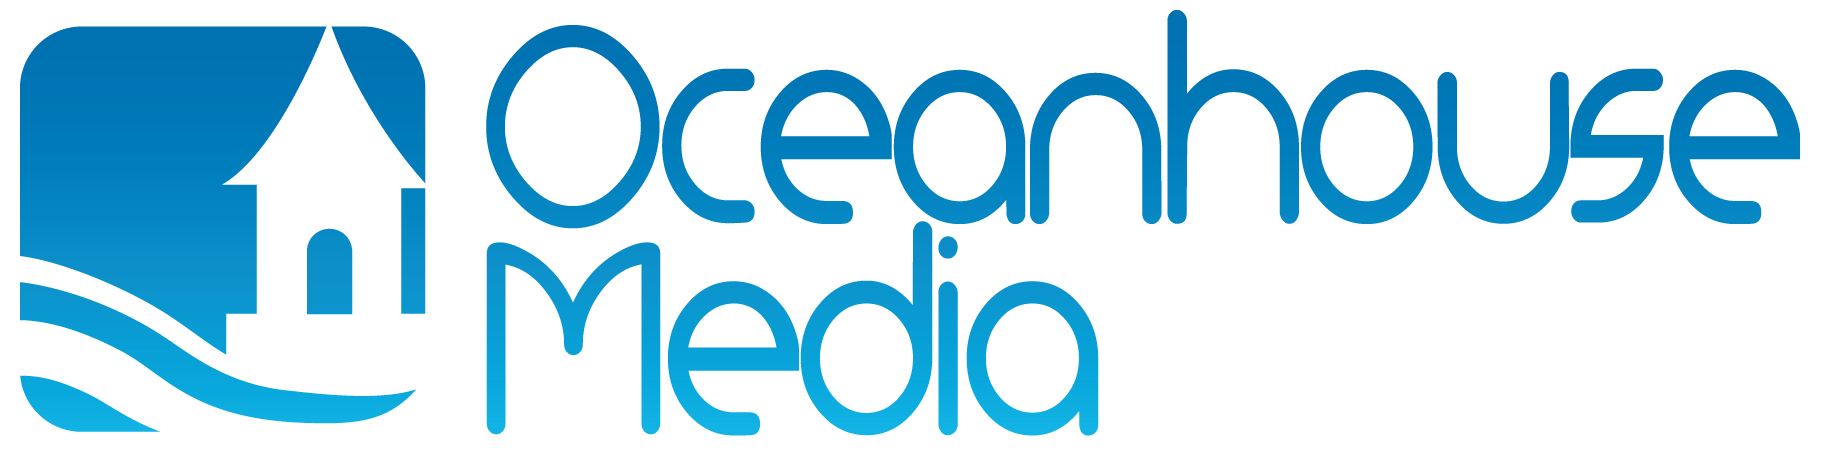 oceanhouse media If you've been searching for a place where you can easily find the newest and  coolest oceanhouse+media apps on the market for your new phone, check out.